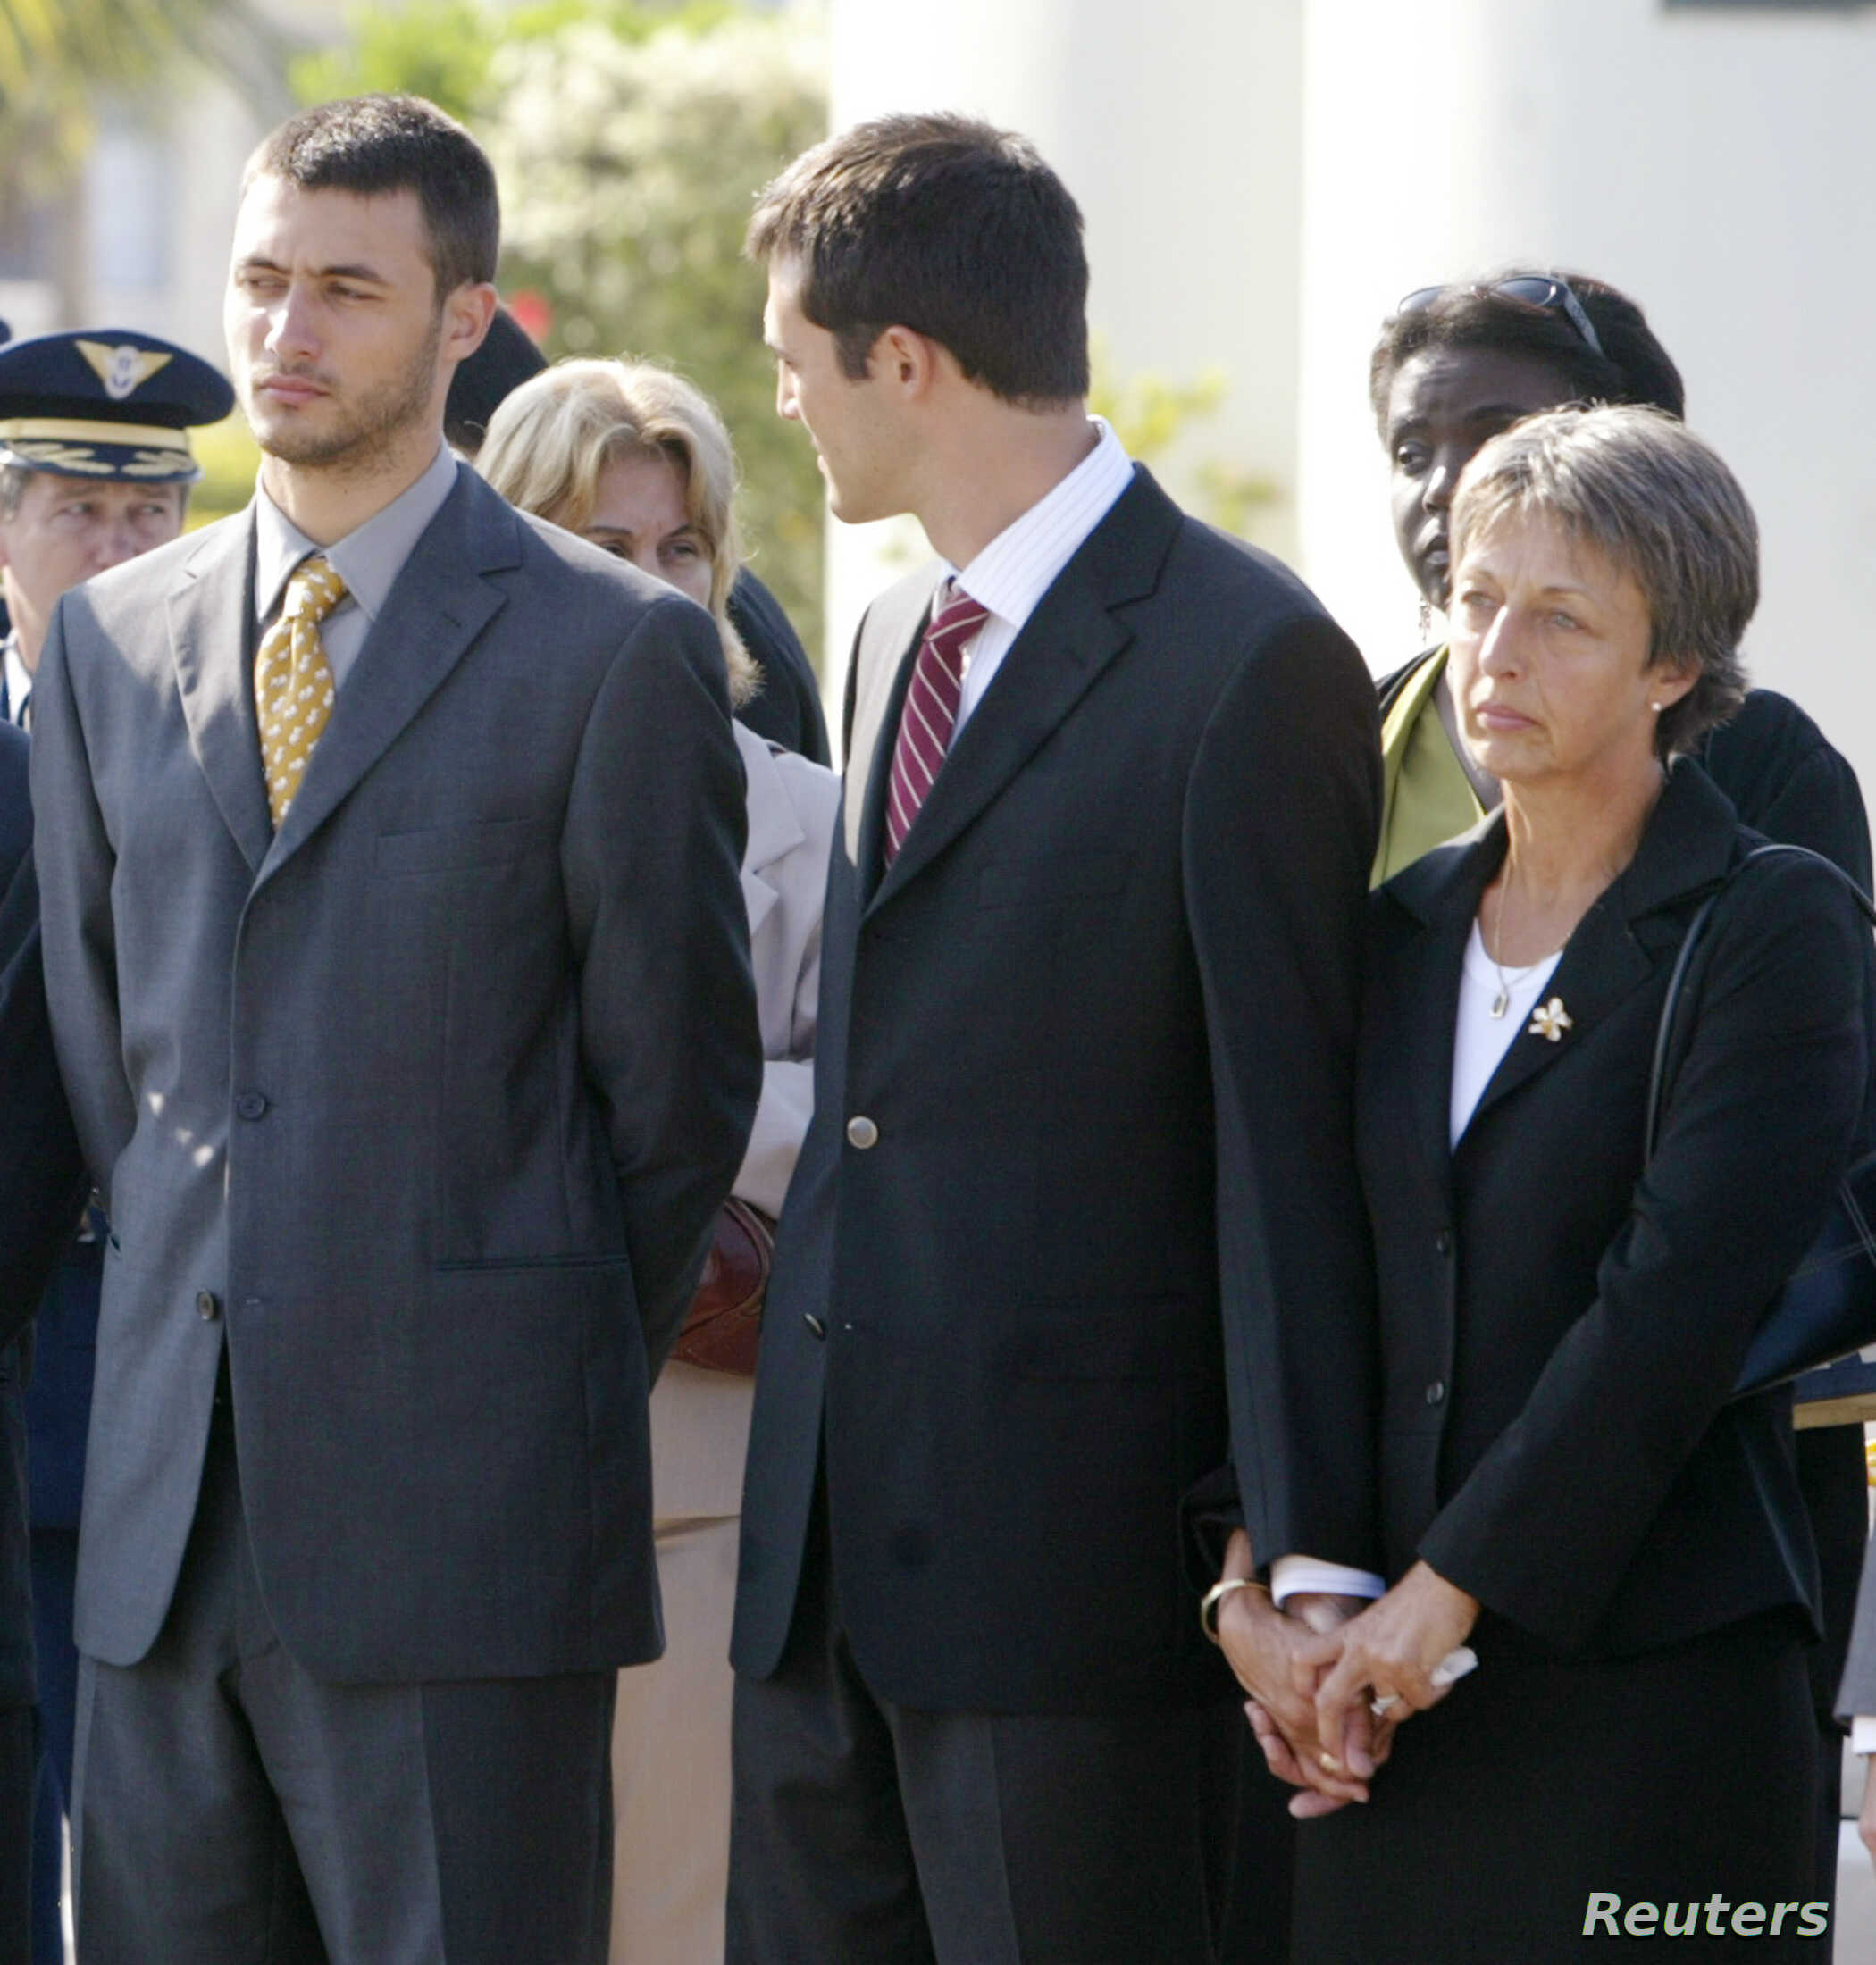 FILE - Annie Vieira (R), widow of Brazilian diplomat, Sergio Vieira de Mello, stands in mourning with her sons Laurent (L) and Adrian upon the arrival of Vieira de Mello's body at a military air base in Rio de Janeiro, Aug. 23, 2003.